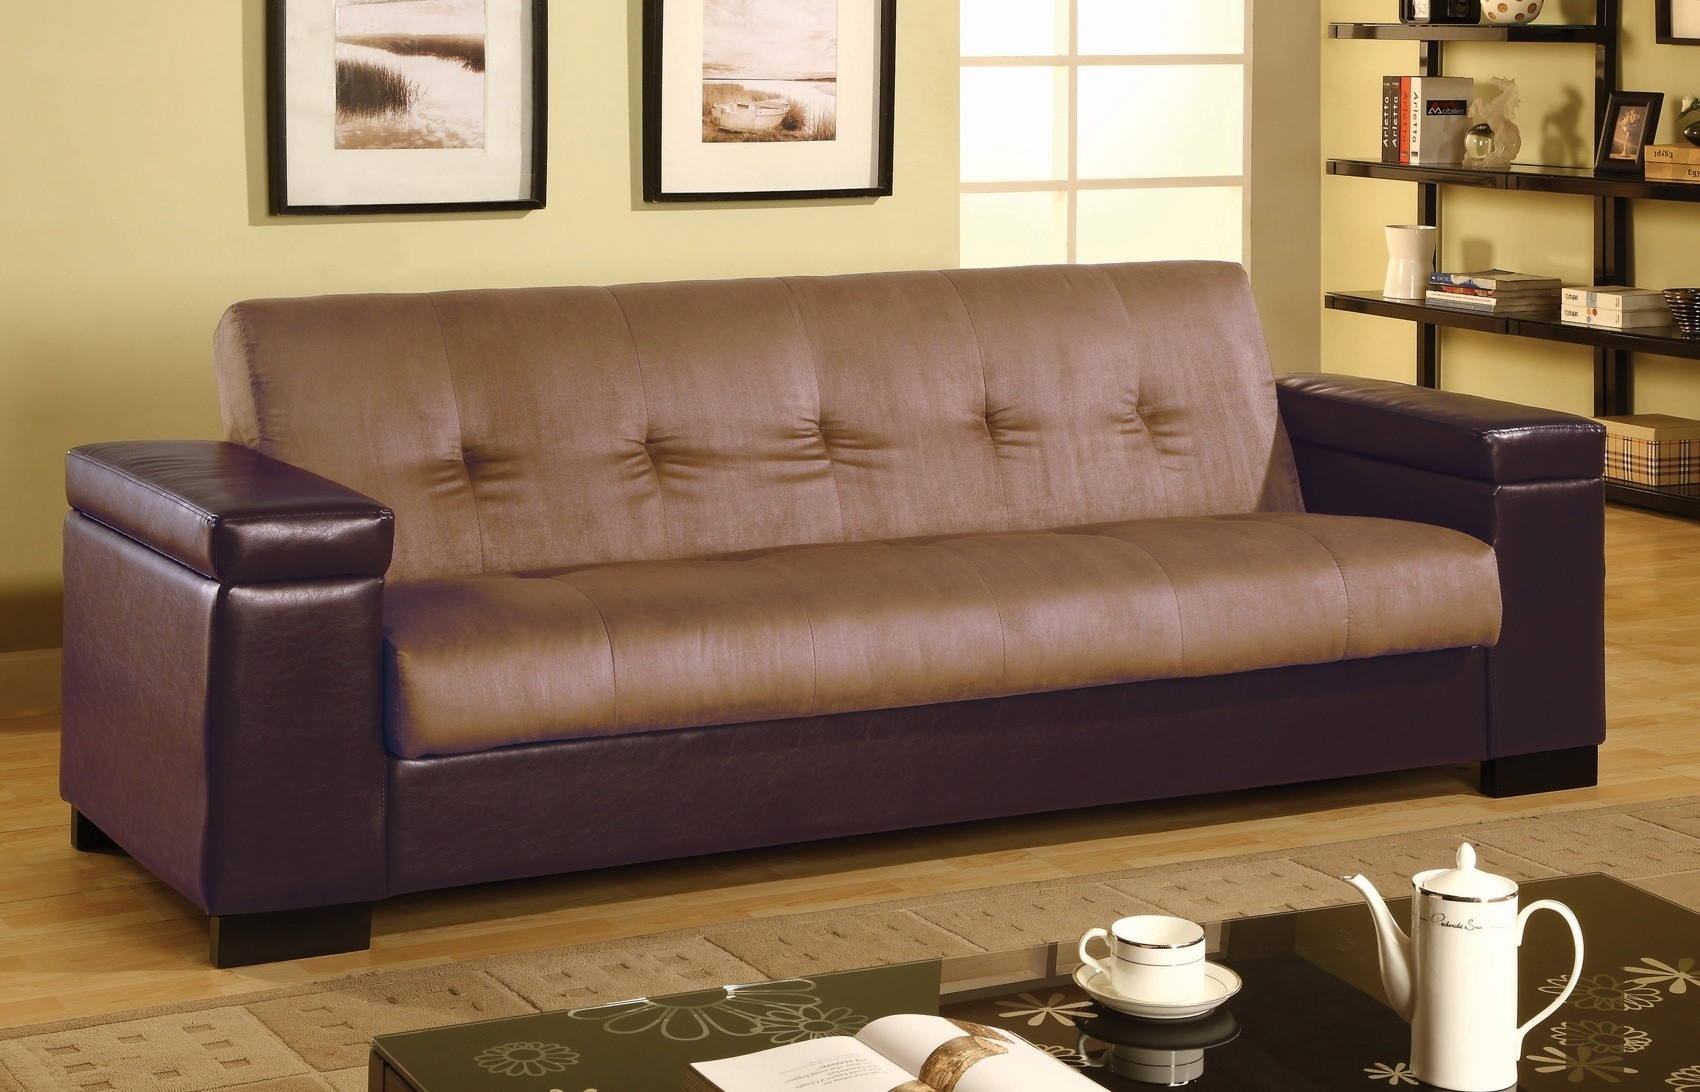 Two Tone Leather Sofa With Storage Under Armrest And Tufted Backrest intended for Leather Sofas With Storage (Image 10 of 10)